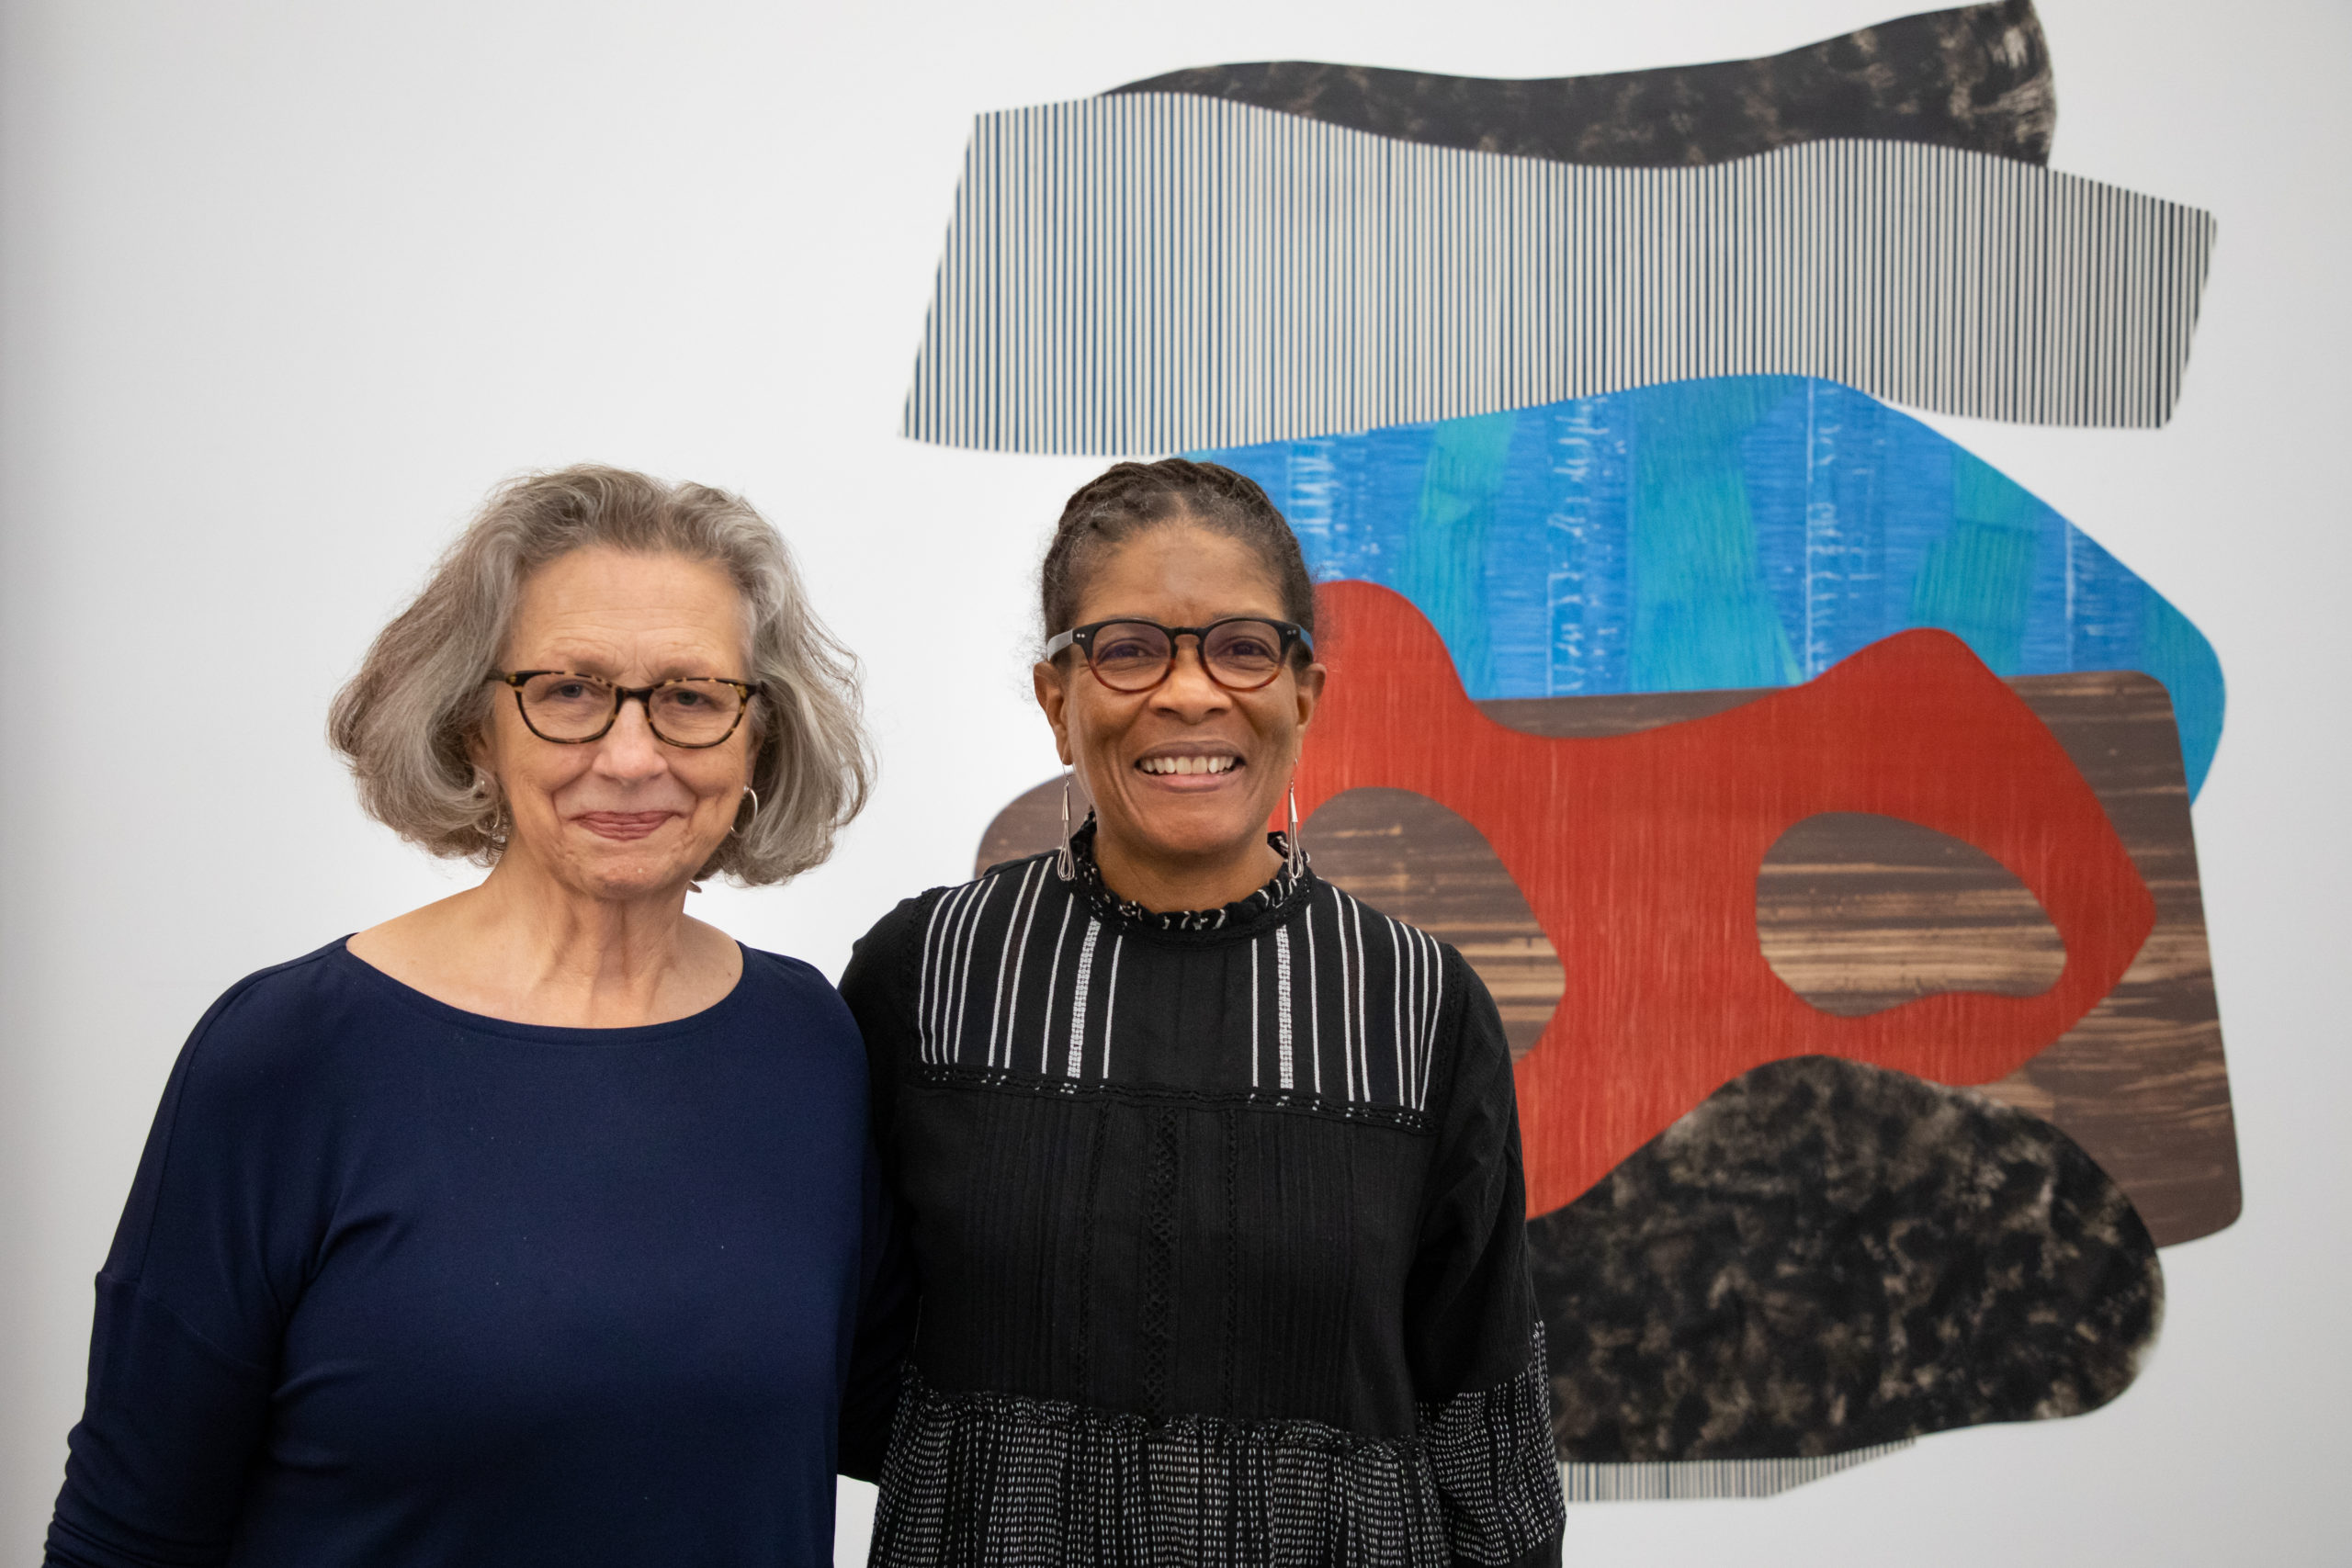 Curator Alicia G. Longwell with artist Nanette Carter at the opening of